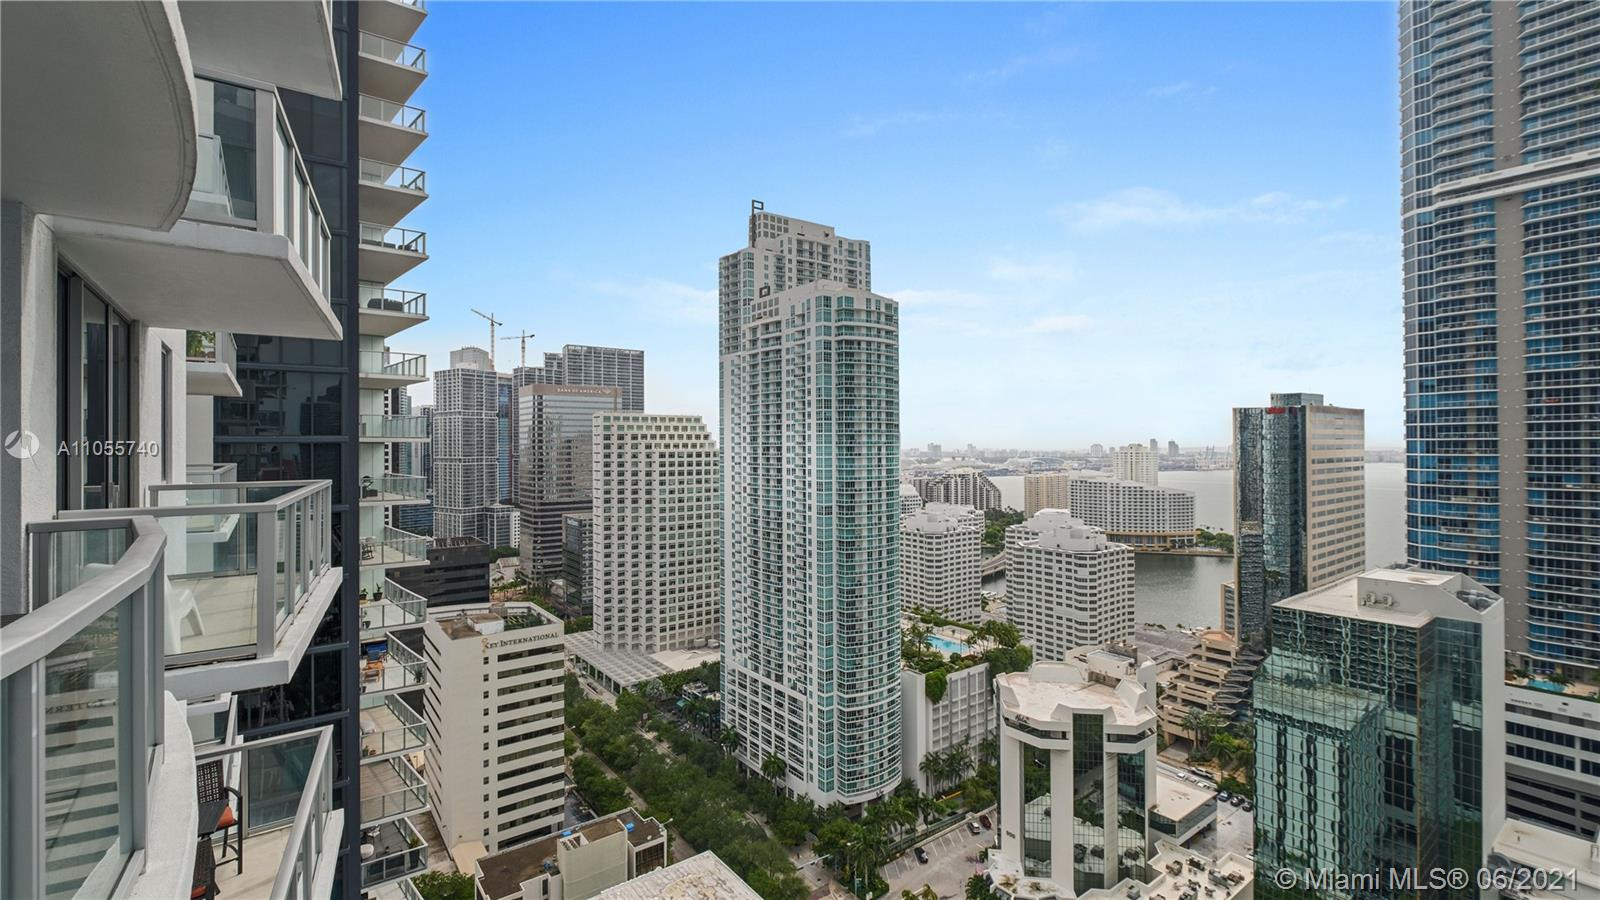 Location, Location, Location!  This condo is in the epicenter of Brickell - walking distance (steps) from shop, restaurants, and bars.  Great opportunity for someone looking to make Brickell home or investor looking for a property with a high rental demand.   Beautiful city and partial water views, assigned parking space, washer and dryer in unit, pool, concierge, gym, valet, etc.  Unit has beautiful large ceramic floors throughout, open kitchen living dining area, a must see.  This one won't last!